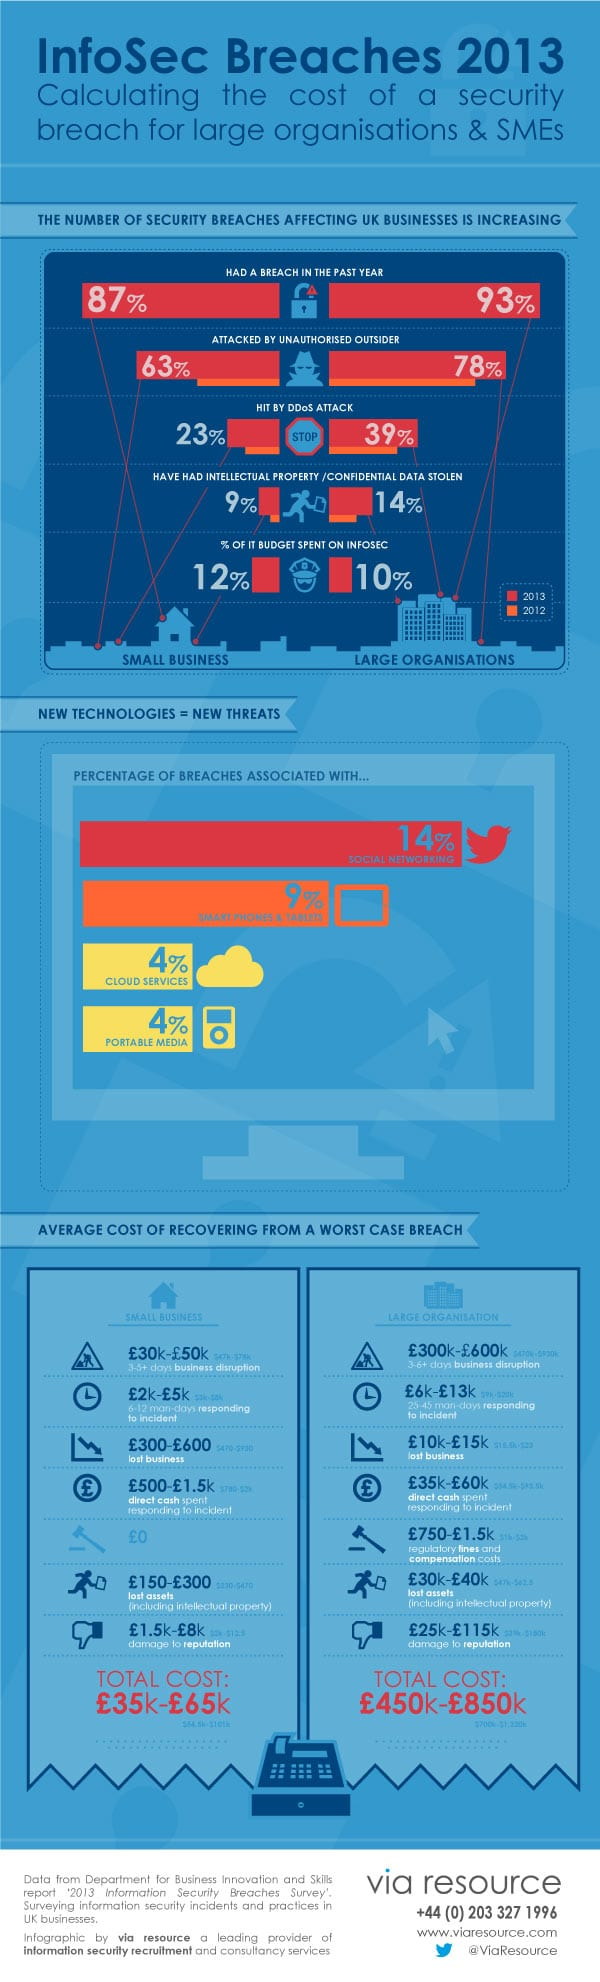 Infosec breaches 2013 infographic